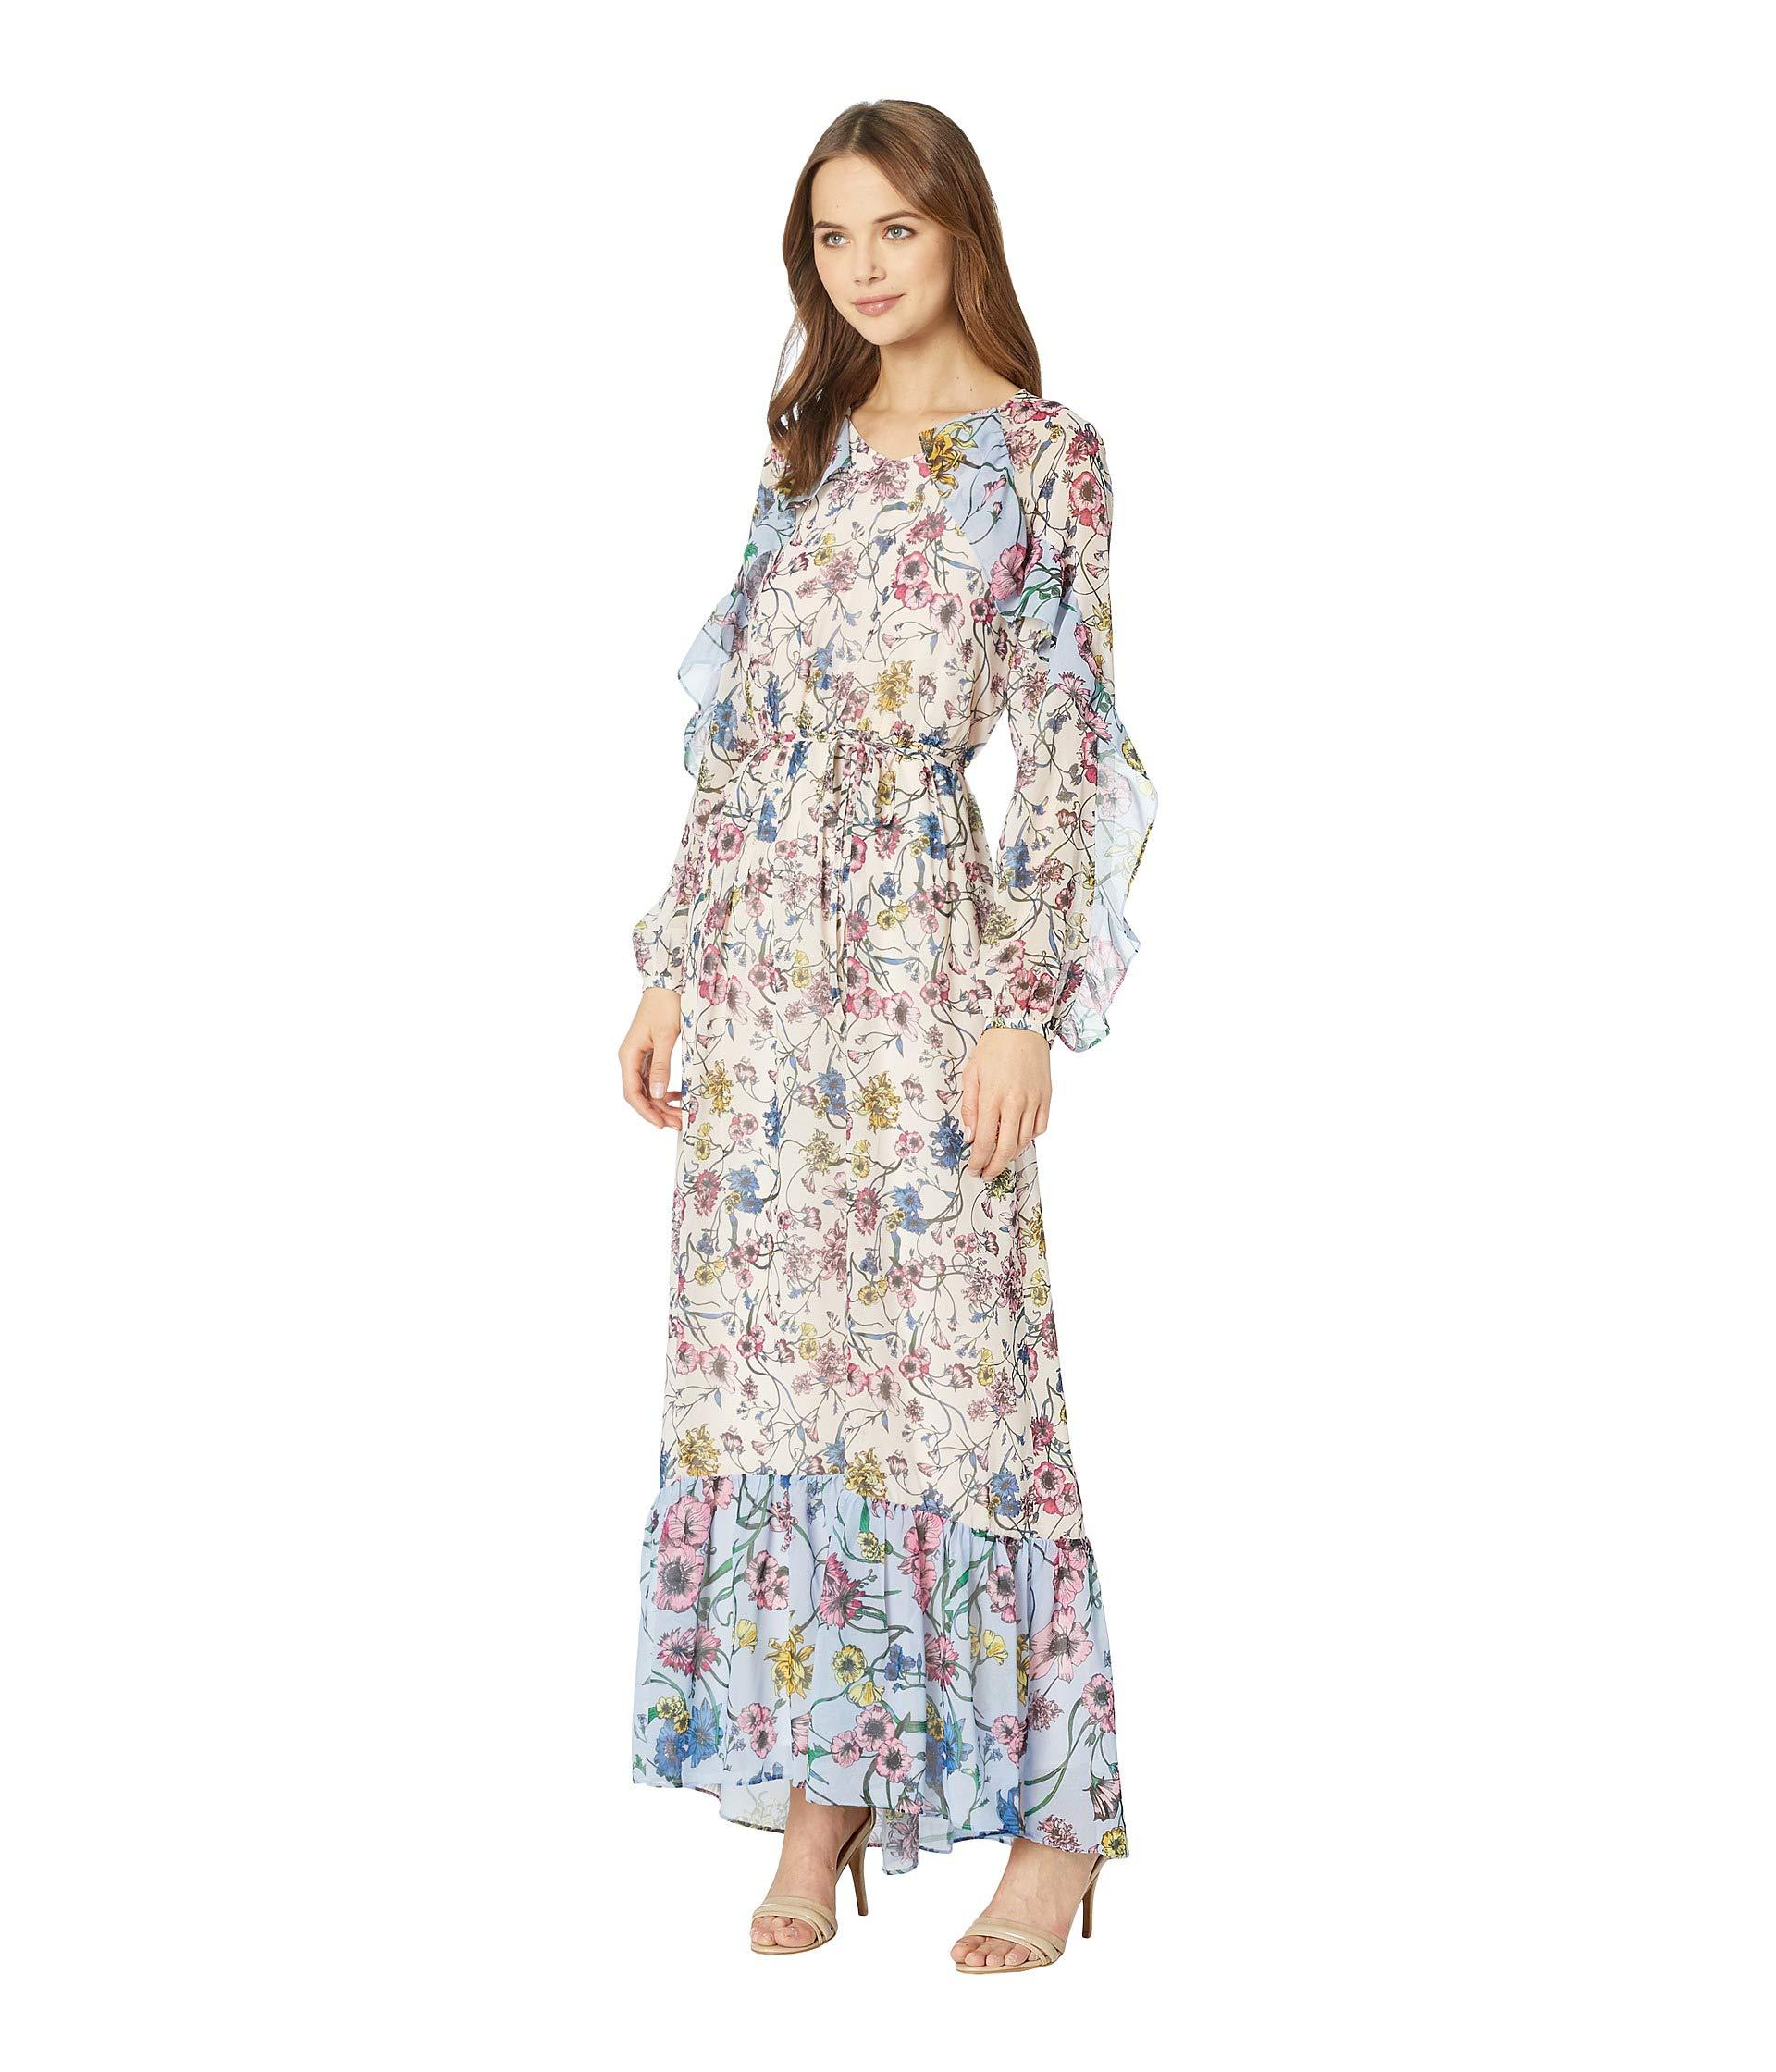 d08653018a11 Juicy Couture Mixed Floral Maxi Dress - Lyst